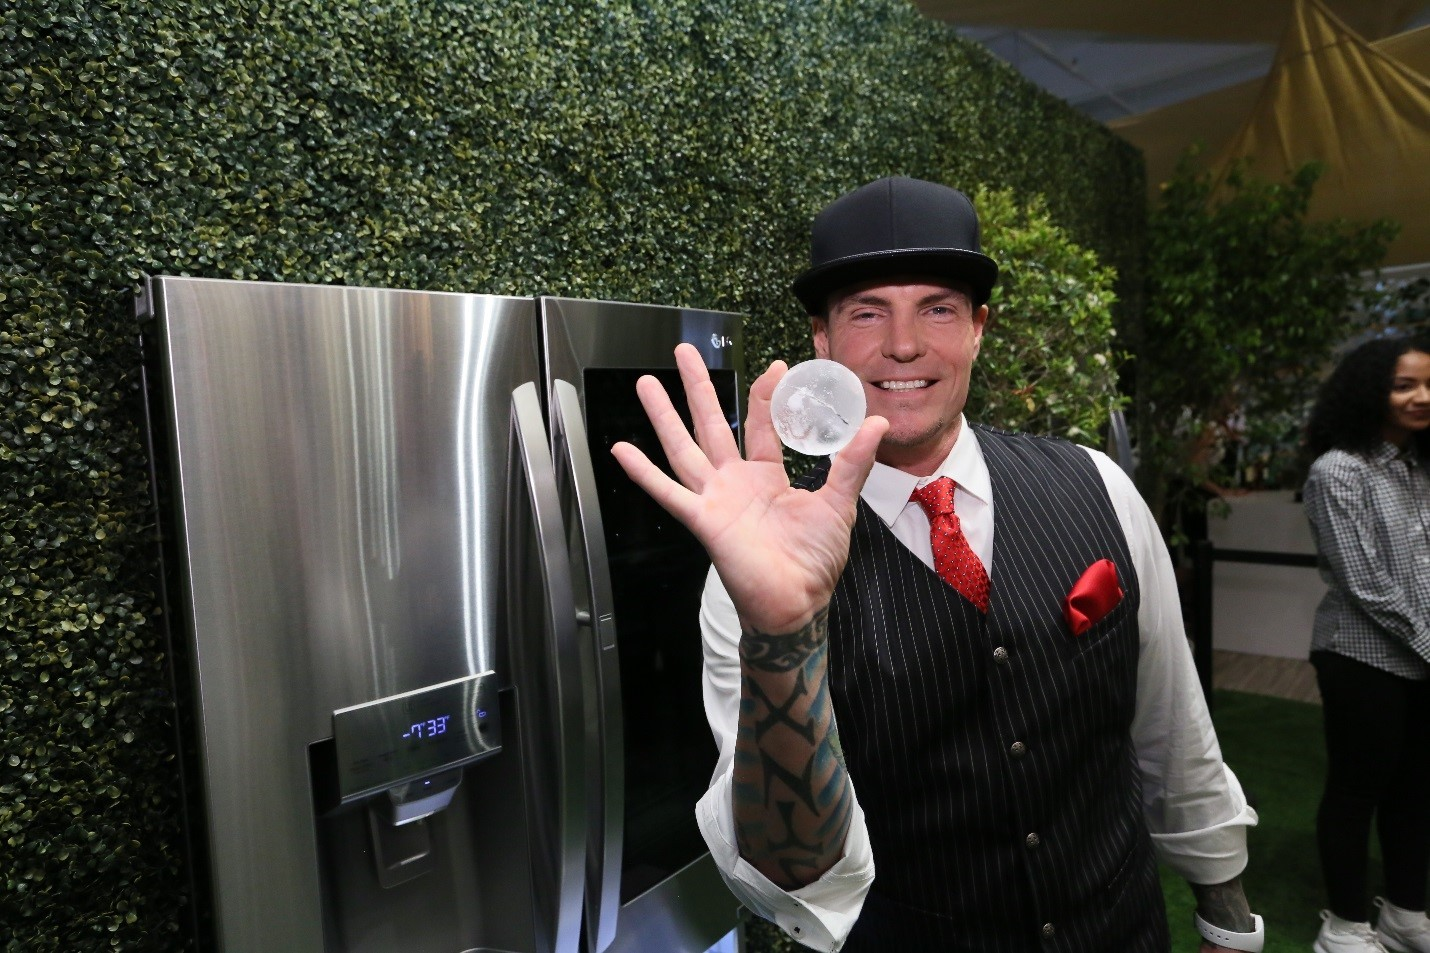 Rapper Vanilla Ice holds up a round LG Craft Ice ball in front of LG InstaView™ Door-in-Door® Refrigerators with Craft Ice.